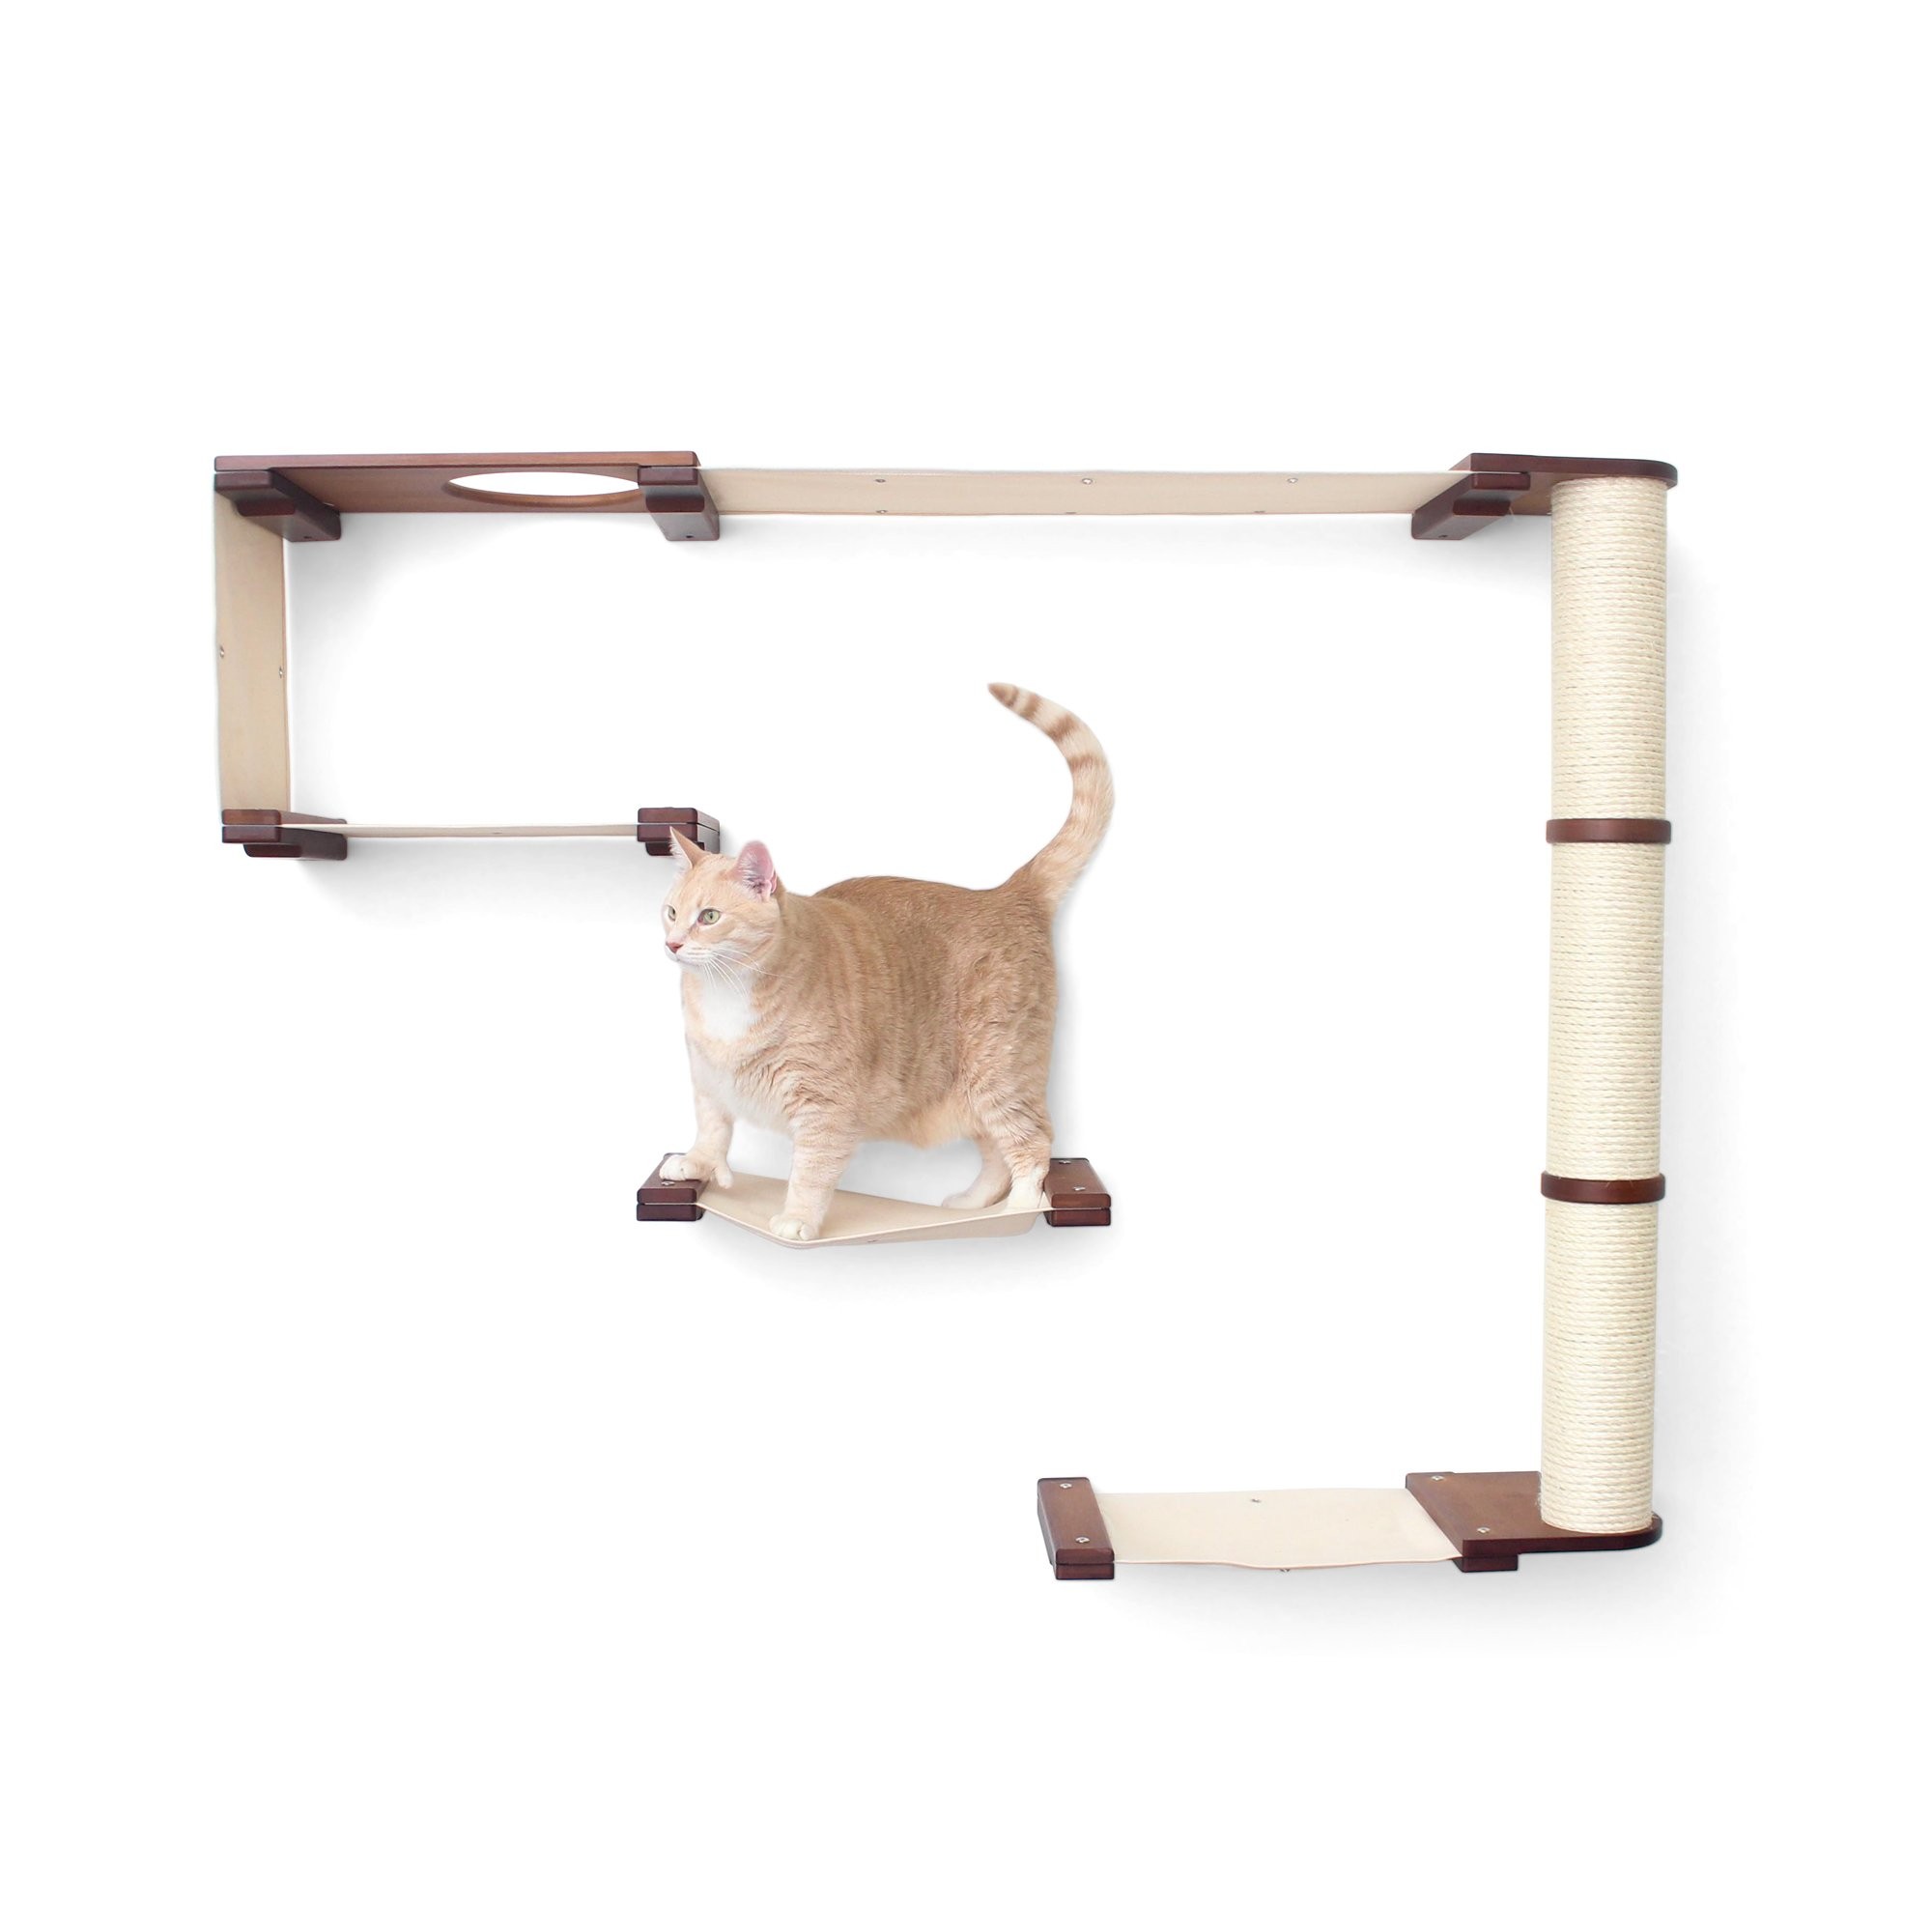 Catastrophicreations The Cat Mod Climb Track Hammocks With Sisal Pole For Cats In Onyx, 50 In W X 69 In H, 42 Lb